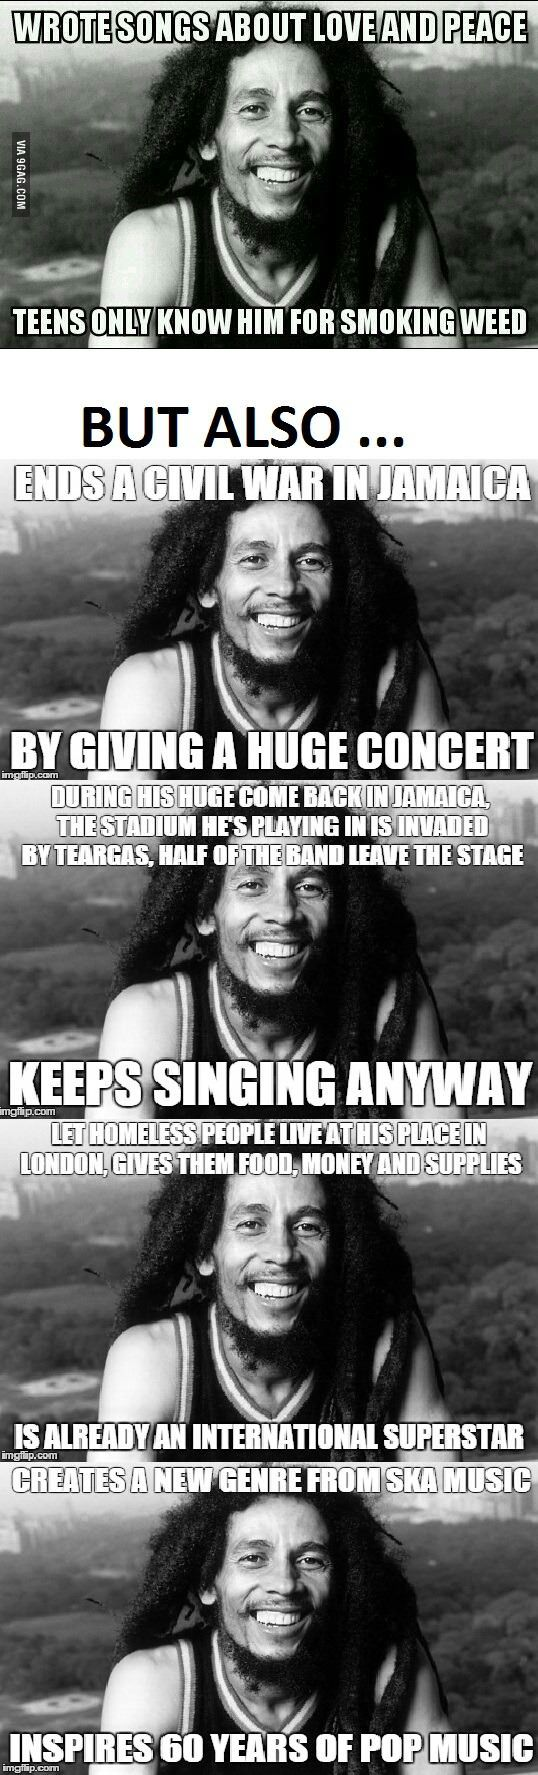 Well, that I didn't know. I'm not a huge Marley music fan, mainly because they play it far too much at work, but these are some good facts.